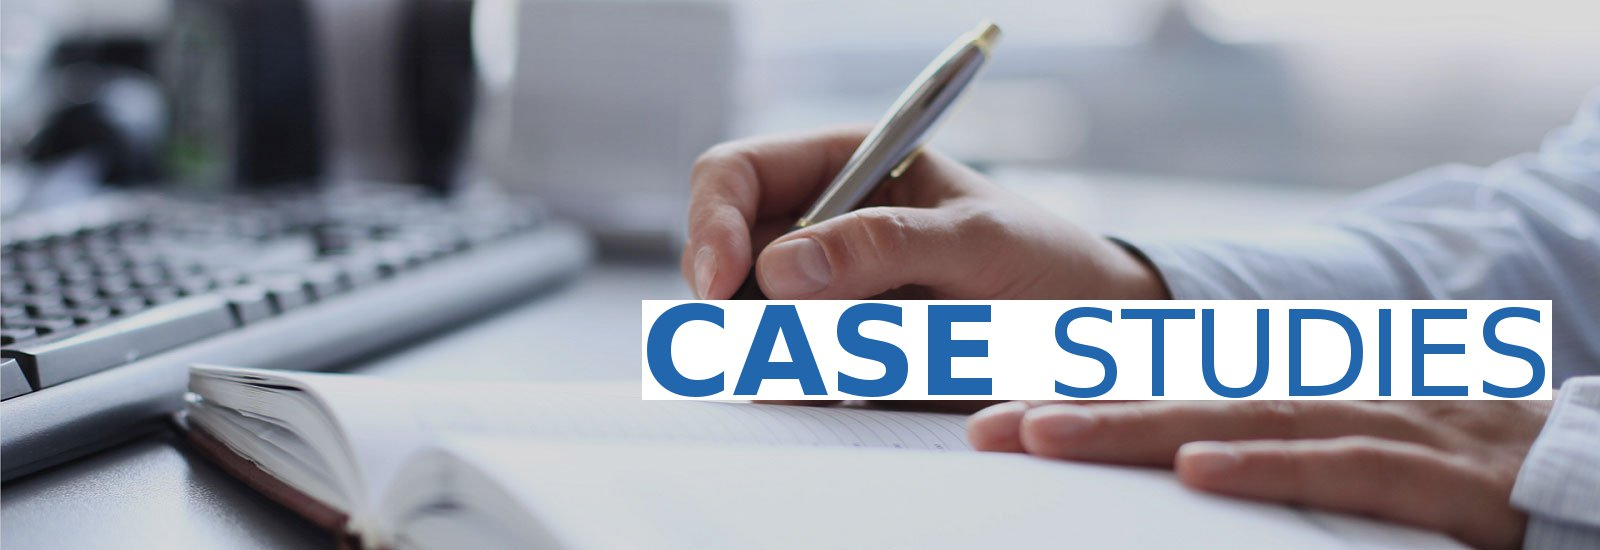 case study banner health Free essay: health organization case study research a health health organization case study research a health care organization or a network that spans.